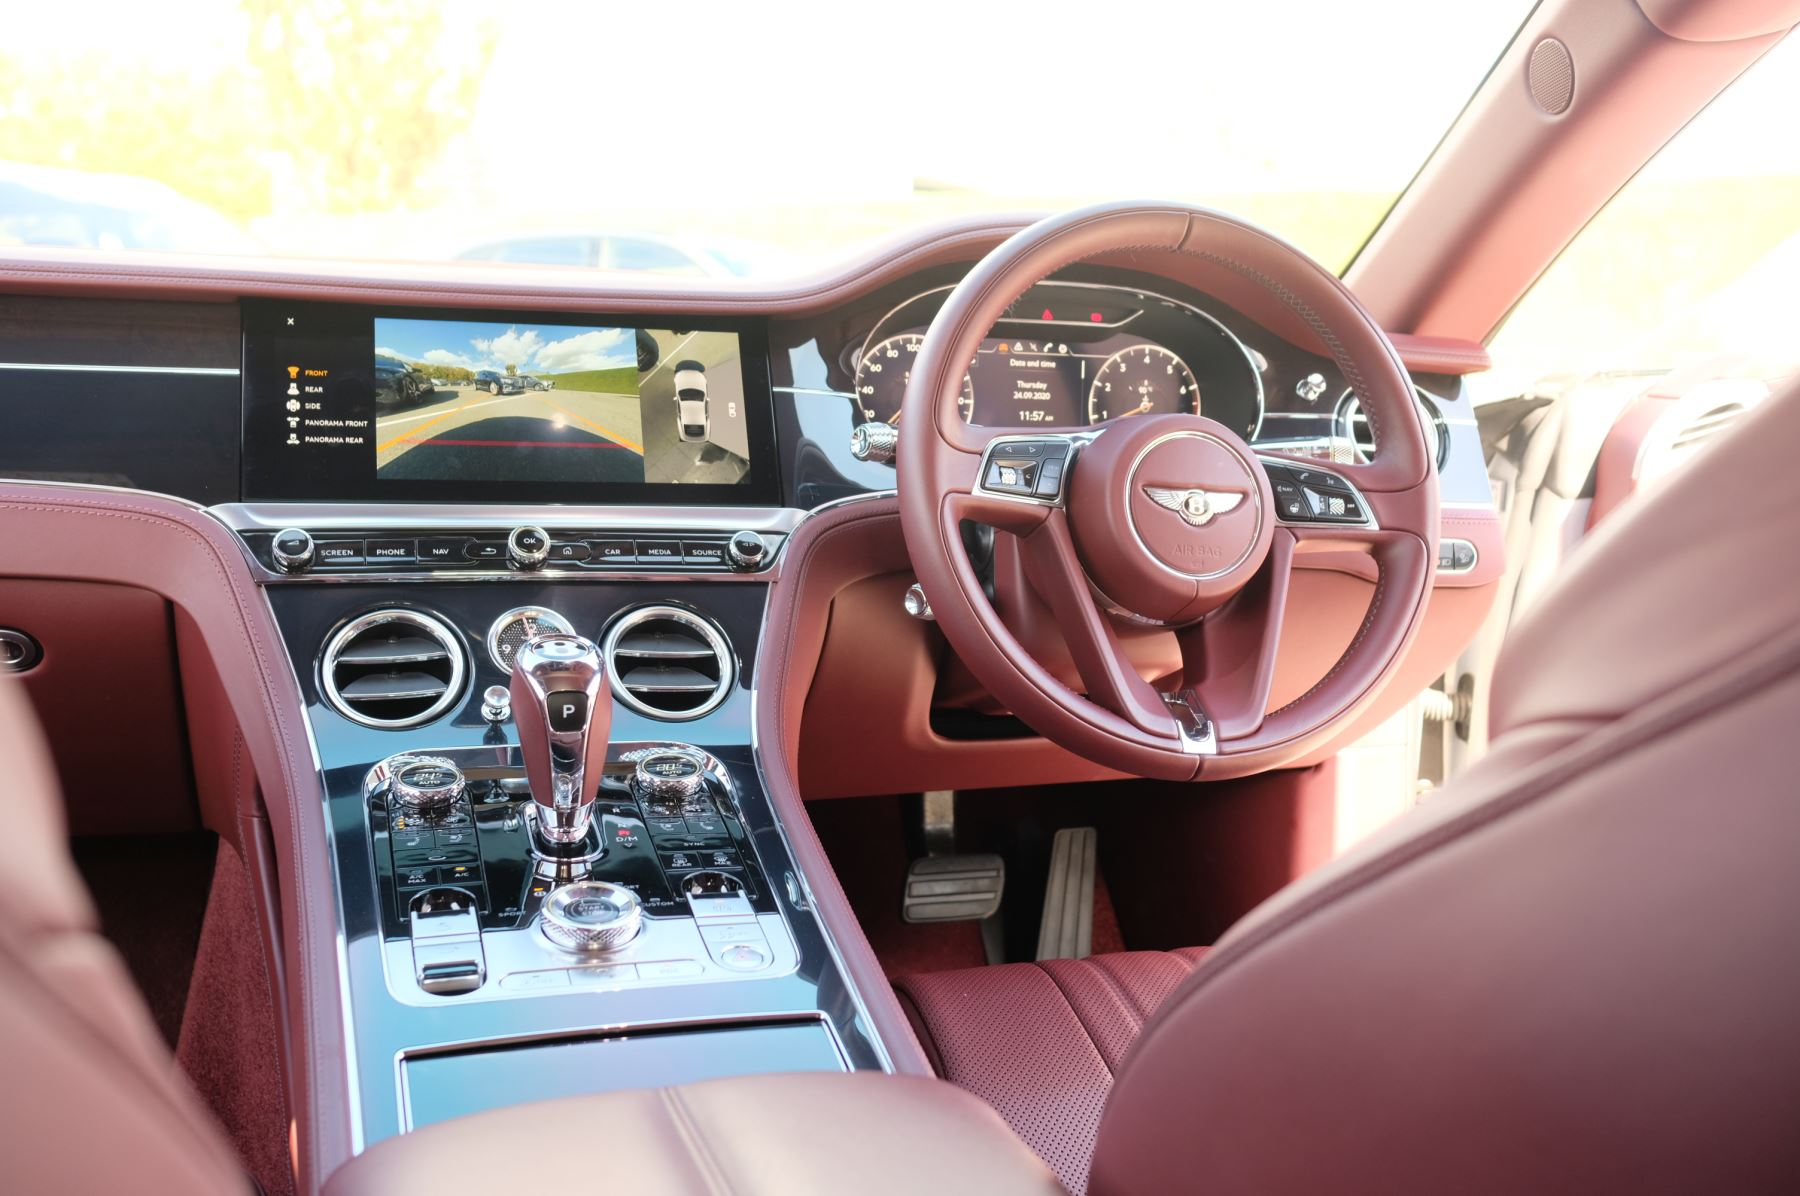 Bentley Continental GT 6.0 W12 Centenary, City and Touring Specification image 21